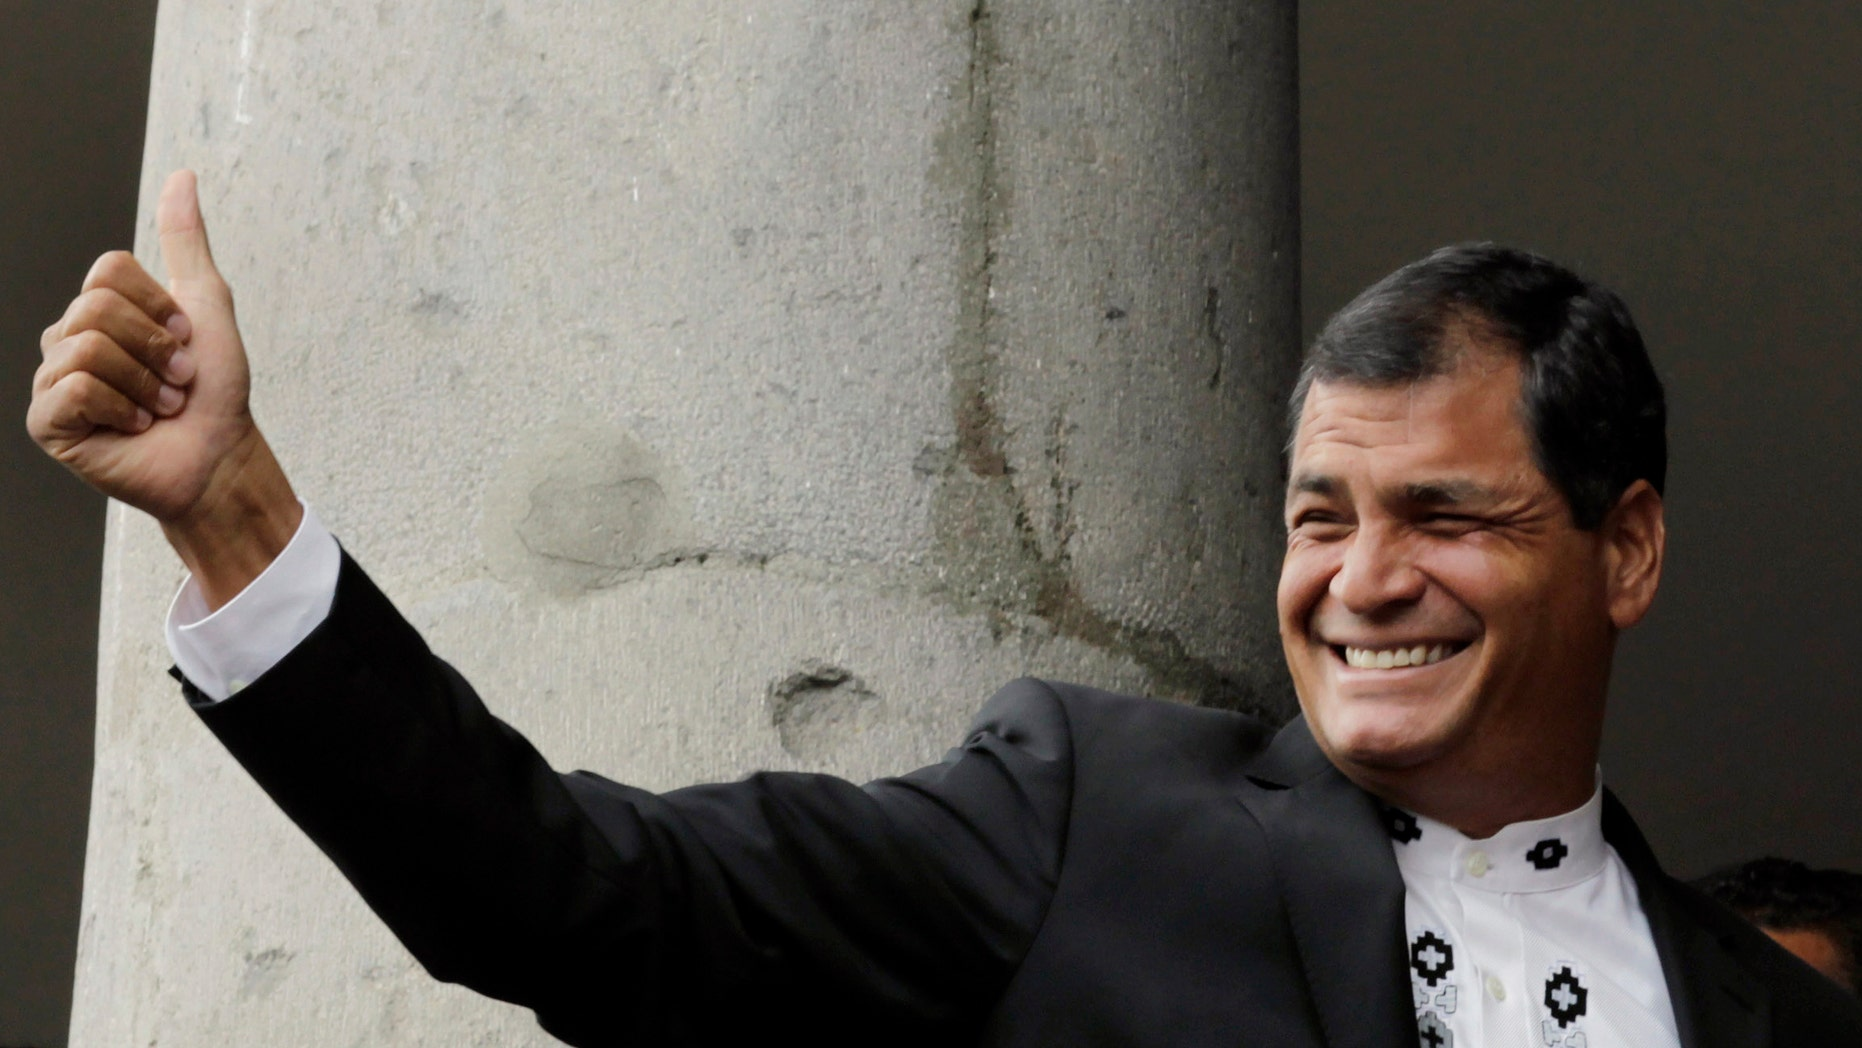 FILE - In this Feb. 16, 2013 file photo, Ecuador's President Rafael Correa gives a thumbs up to supporters as he stands with the Emir of Qatar Sheikh Hamad bin Khalifa al-Thani, not in picture, on a balcony at the government palace in Quito, Ecuador.  On Friday, May 24, 2013, Correa will begin his second presidential term after winning the Feb. 17 election.  (AP Photo/Dolores Ochoa, File)